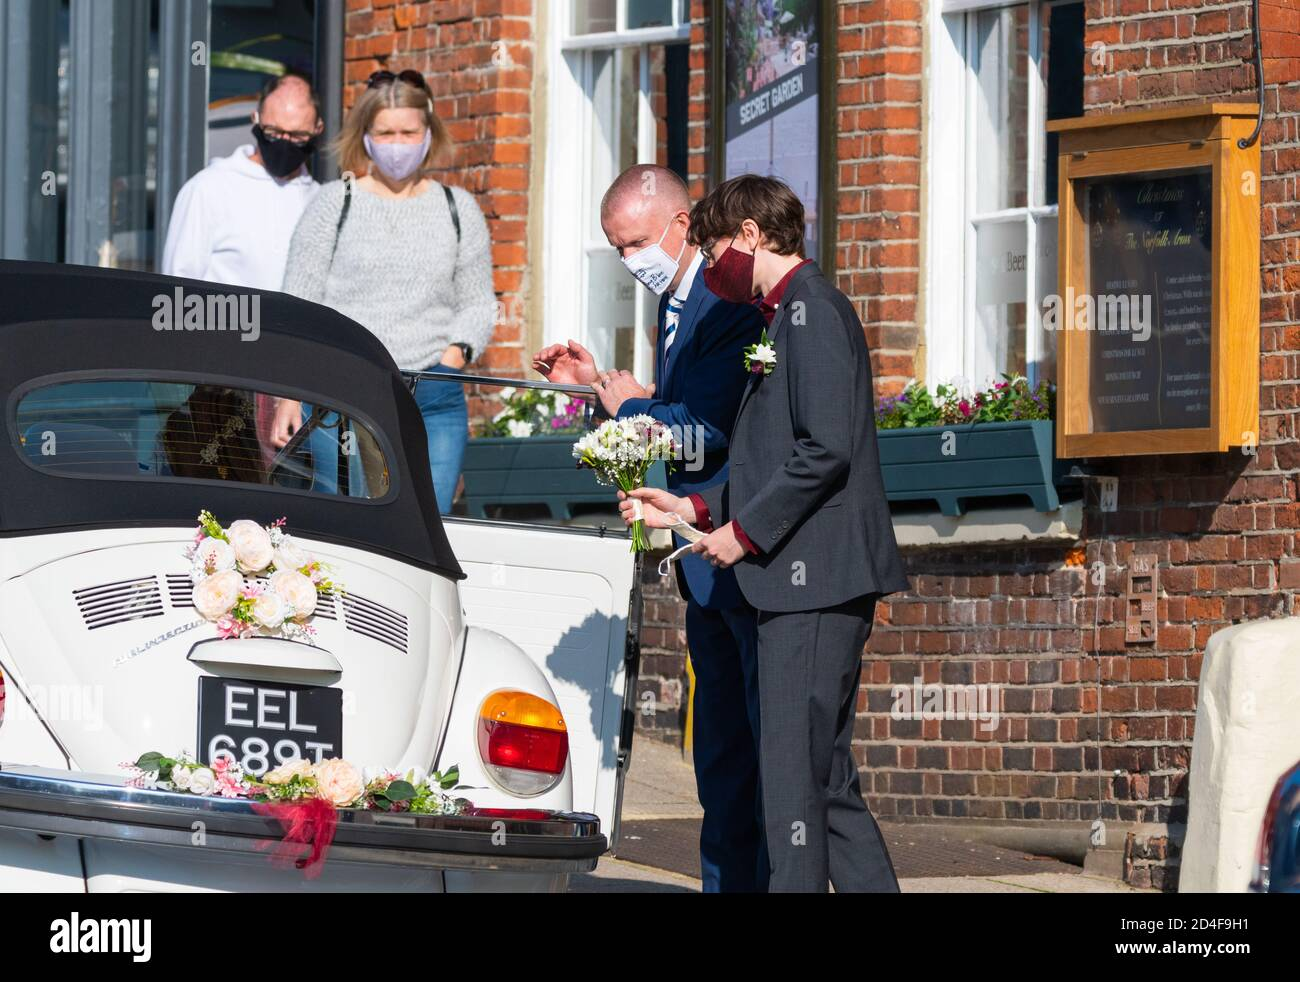 A couple wearing facemasks getting into a wedding car at a COVID safe event during the COVID19 Coronavirus pandemic in West Sussex, England, UK. Stock Photo